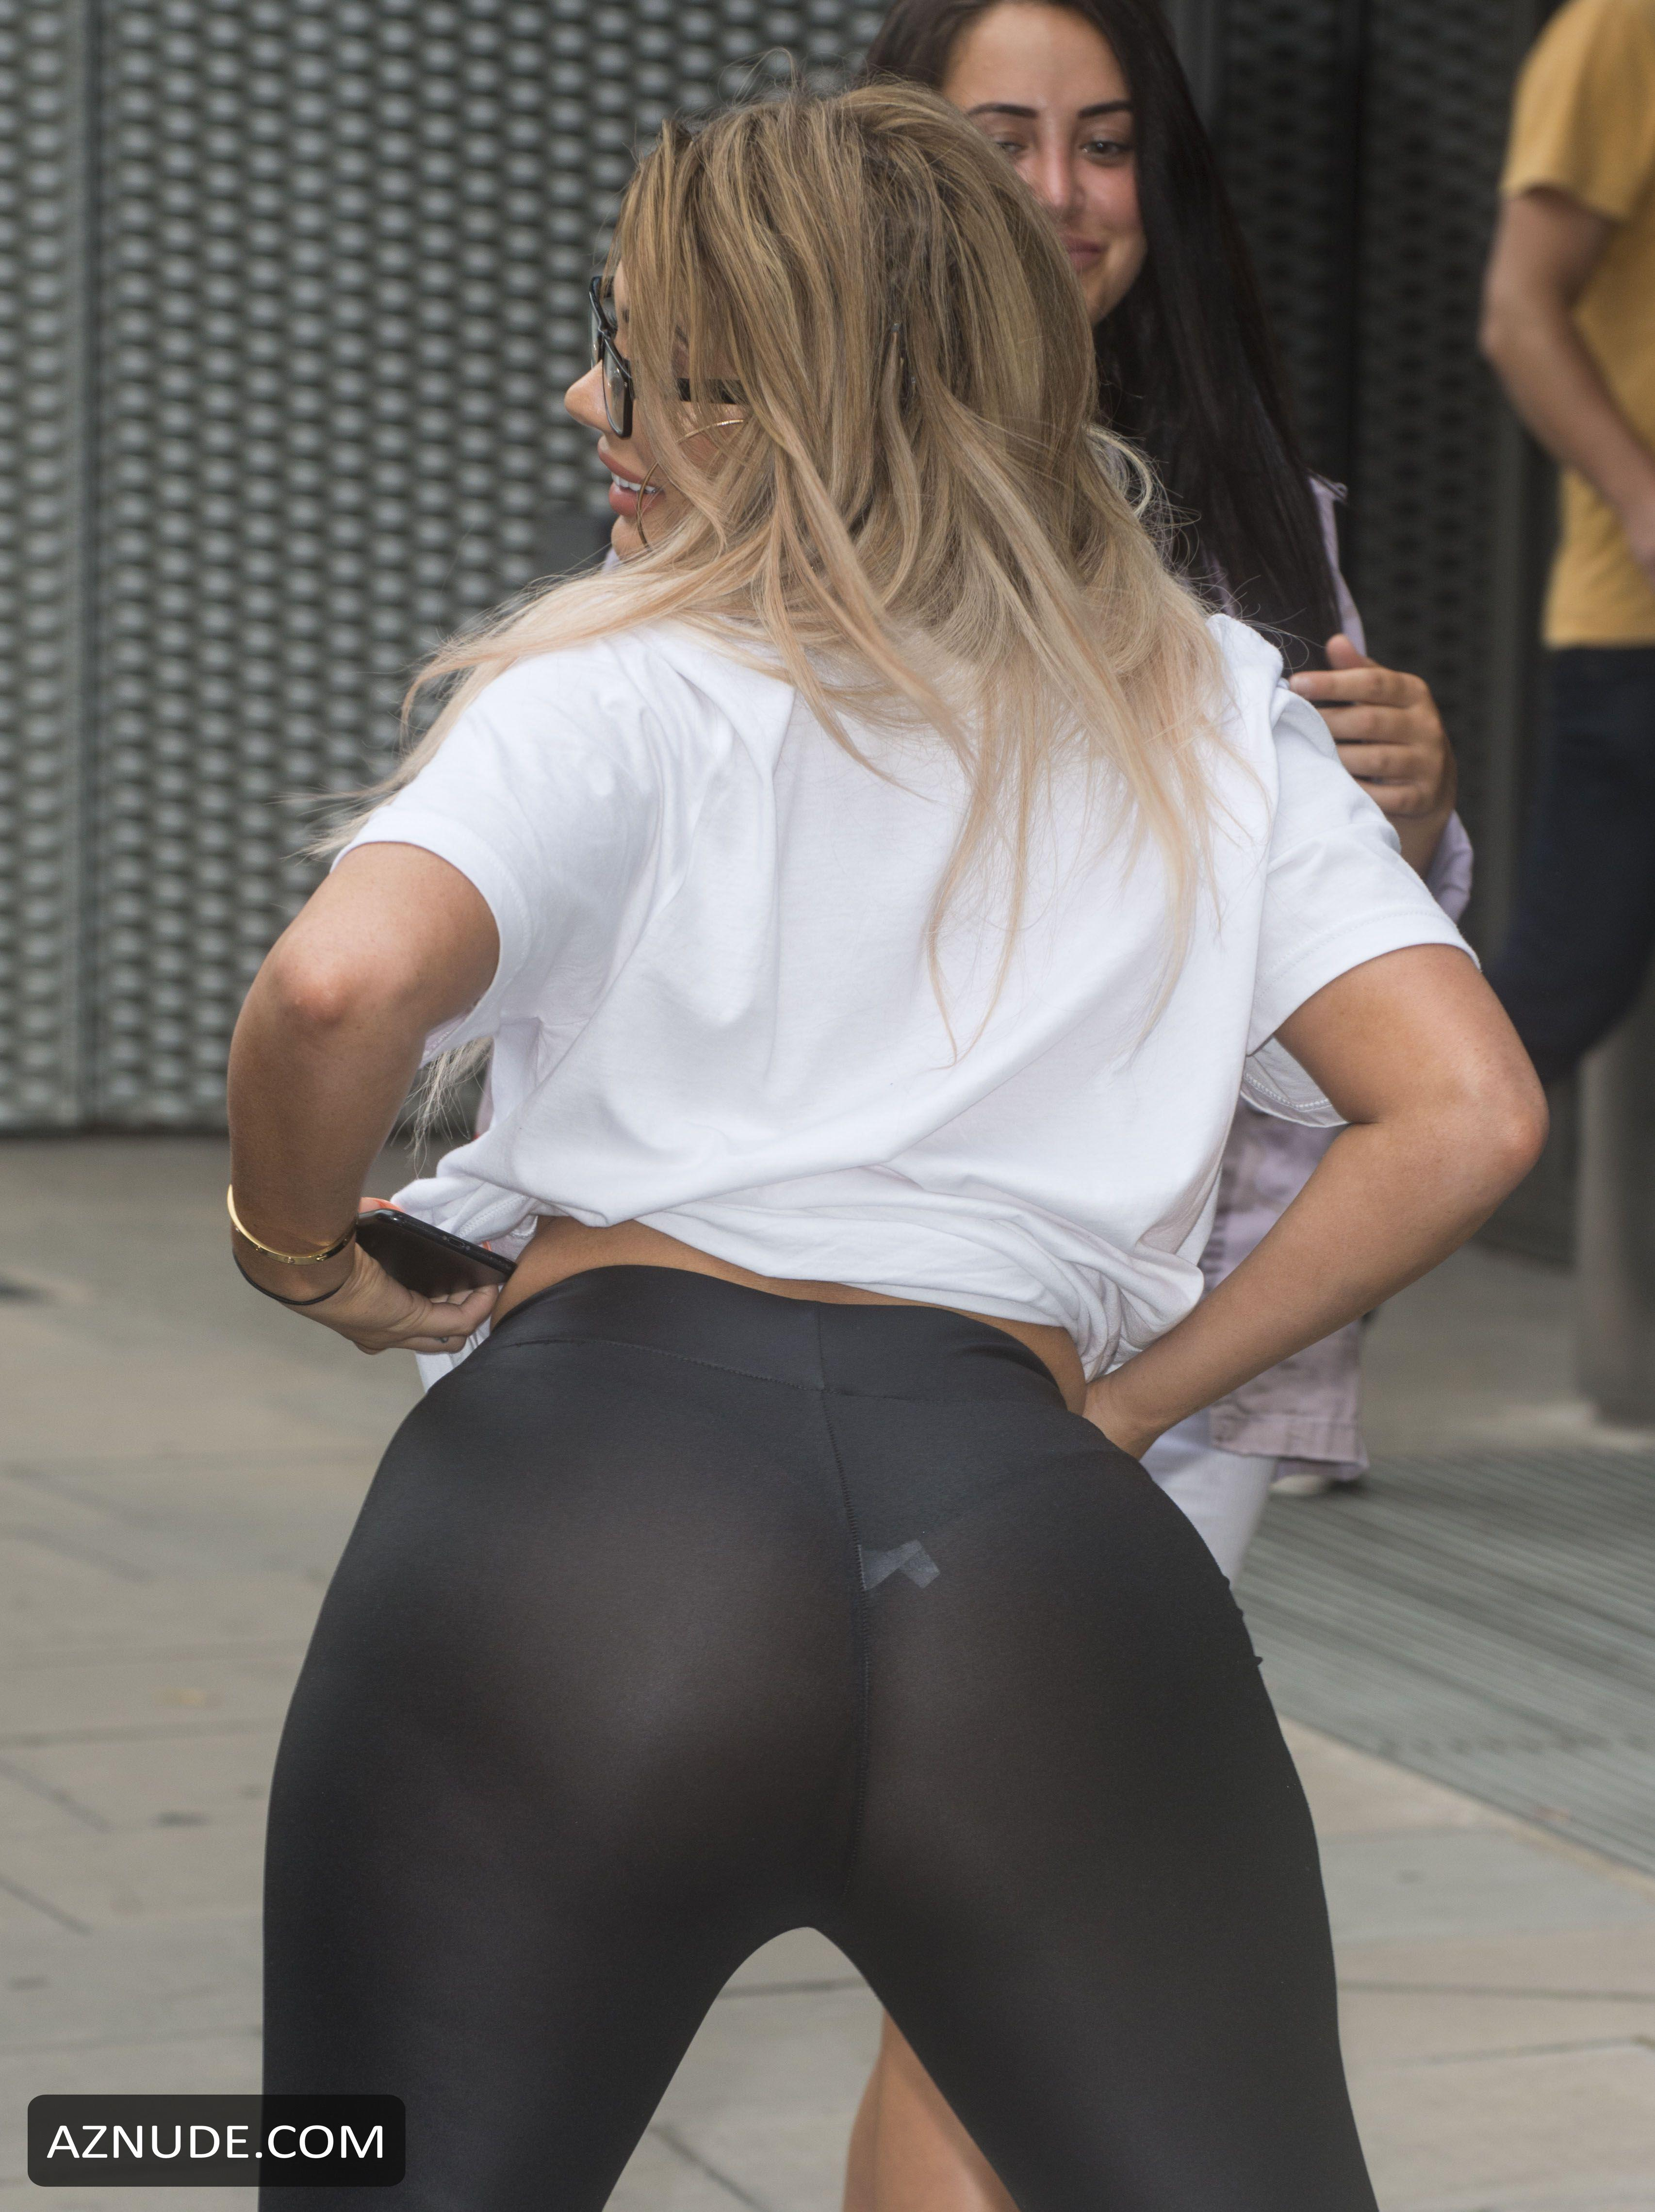 Geordie Shore Naked Pictures chloe ferry sexy photos at new geordie shore series premiere